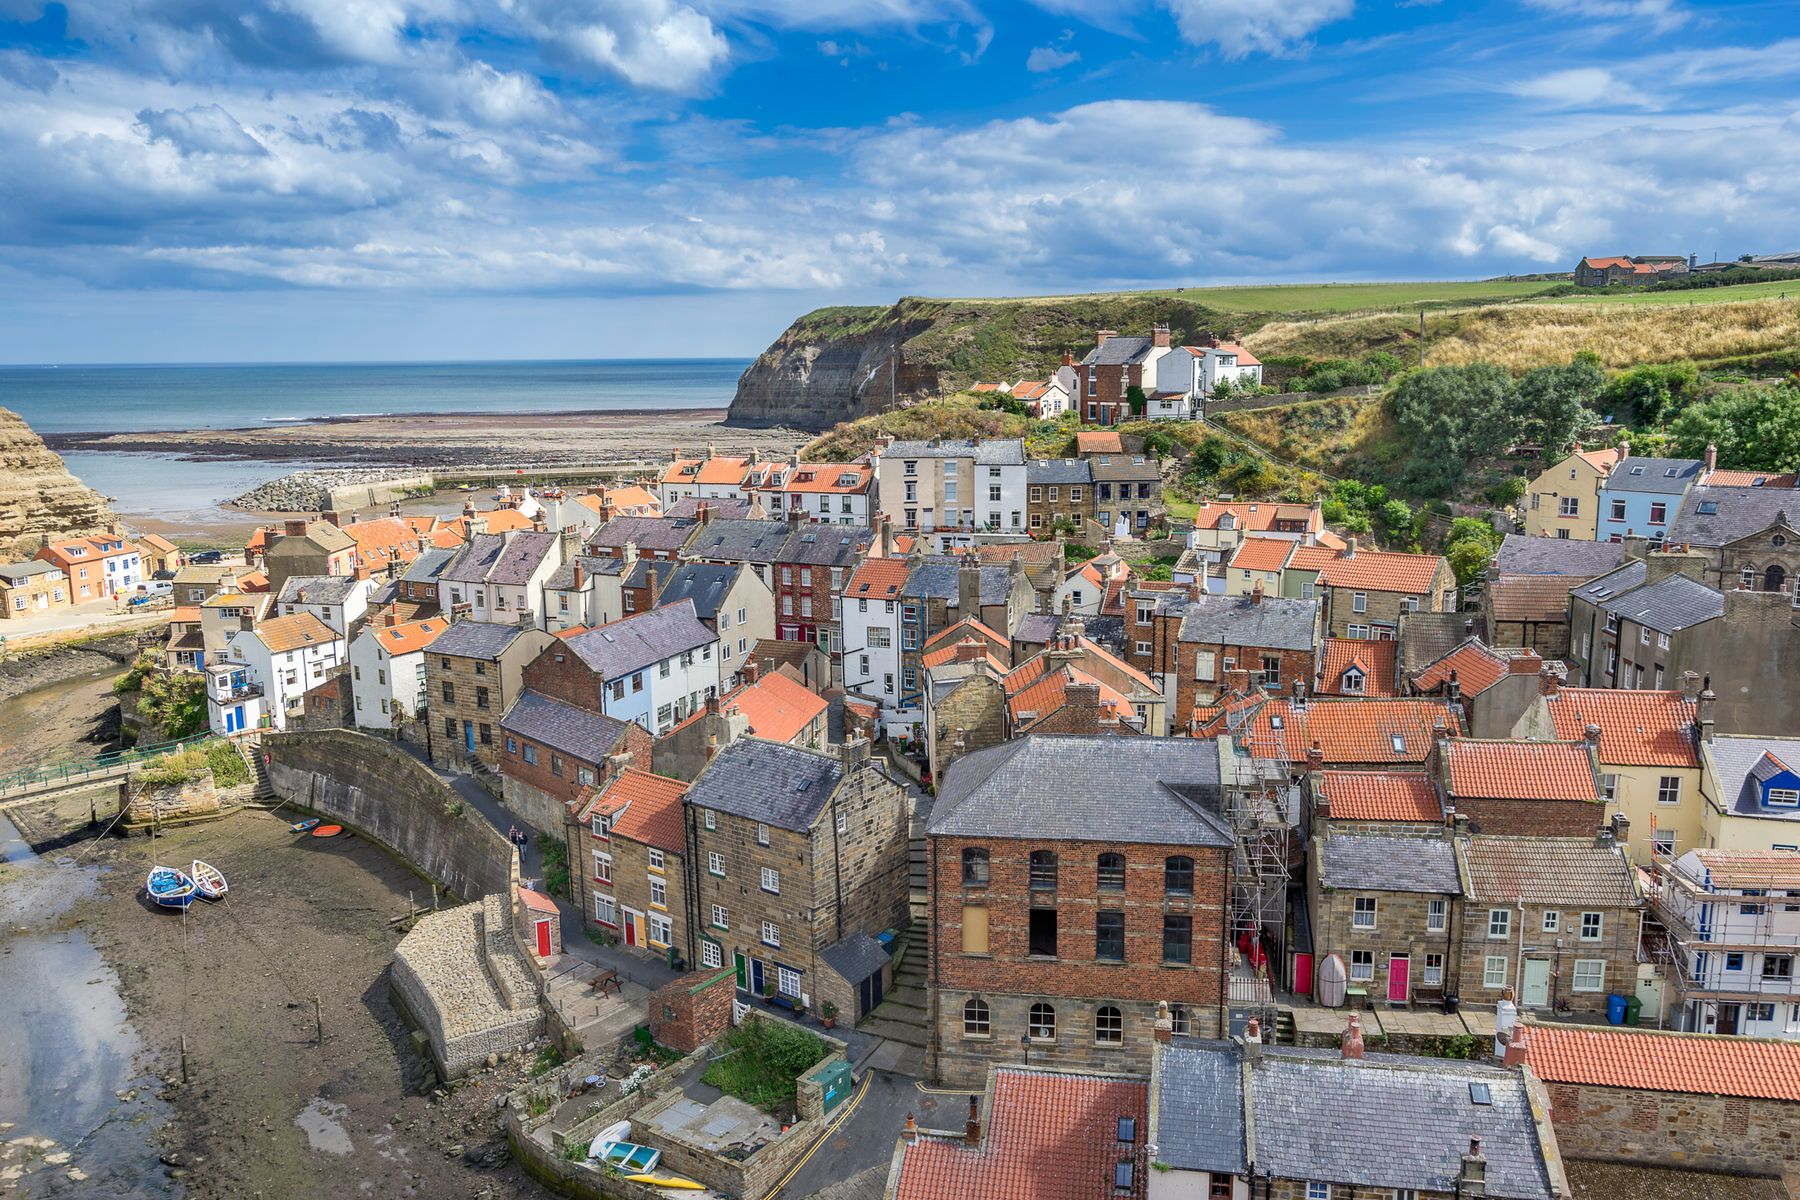 Aerial view of Staithes ith its small sandy fishing beach , one of the best places to visit in Yorkshire